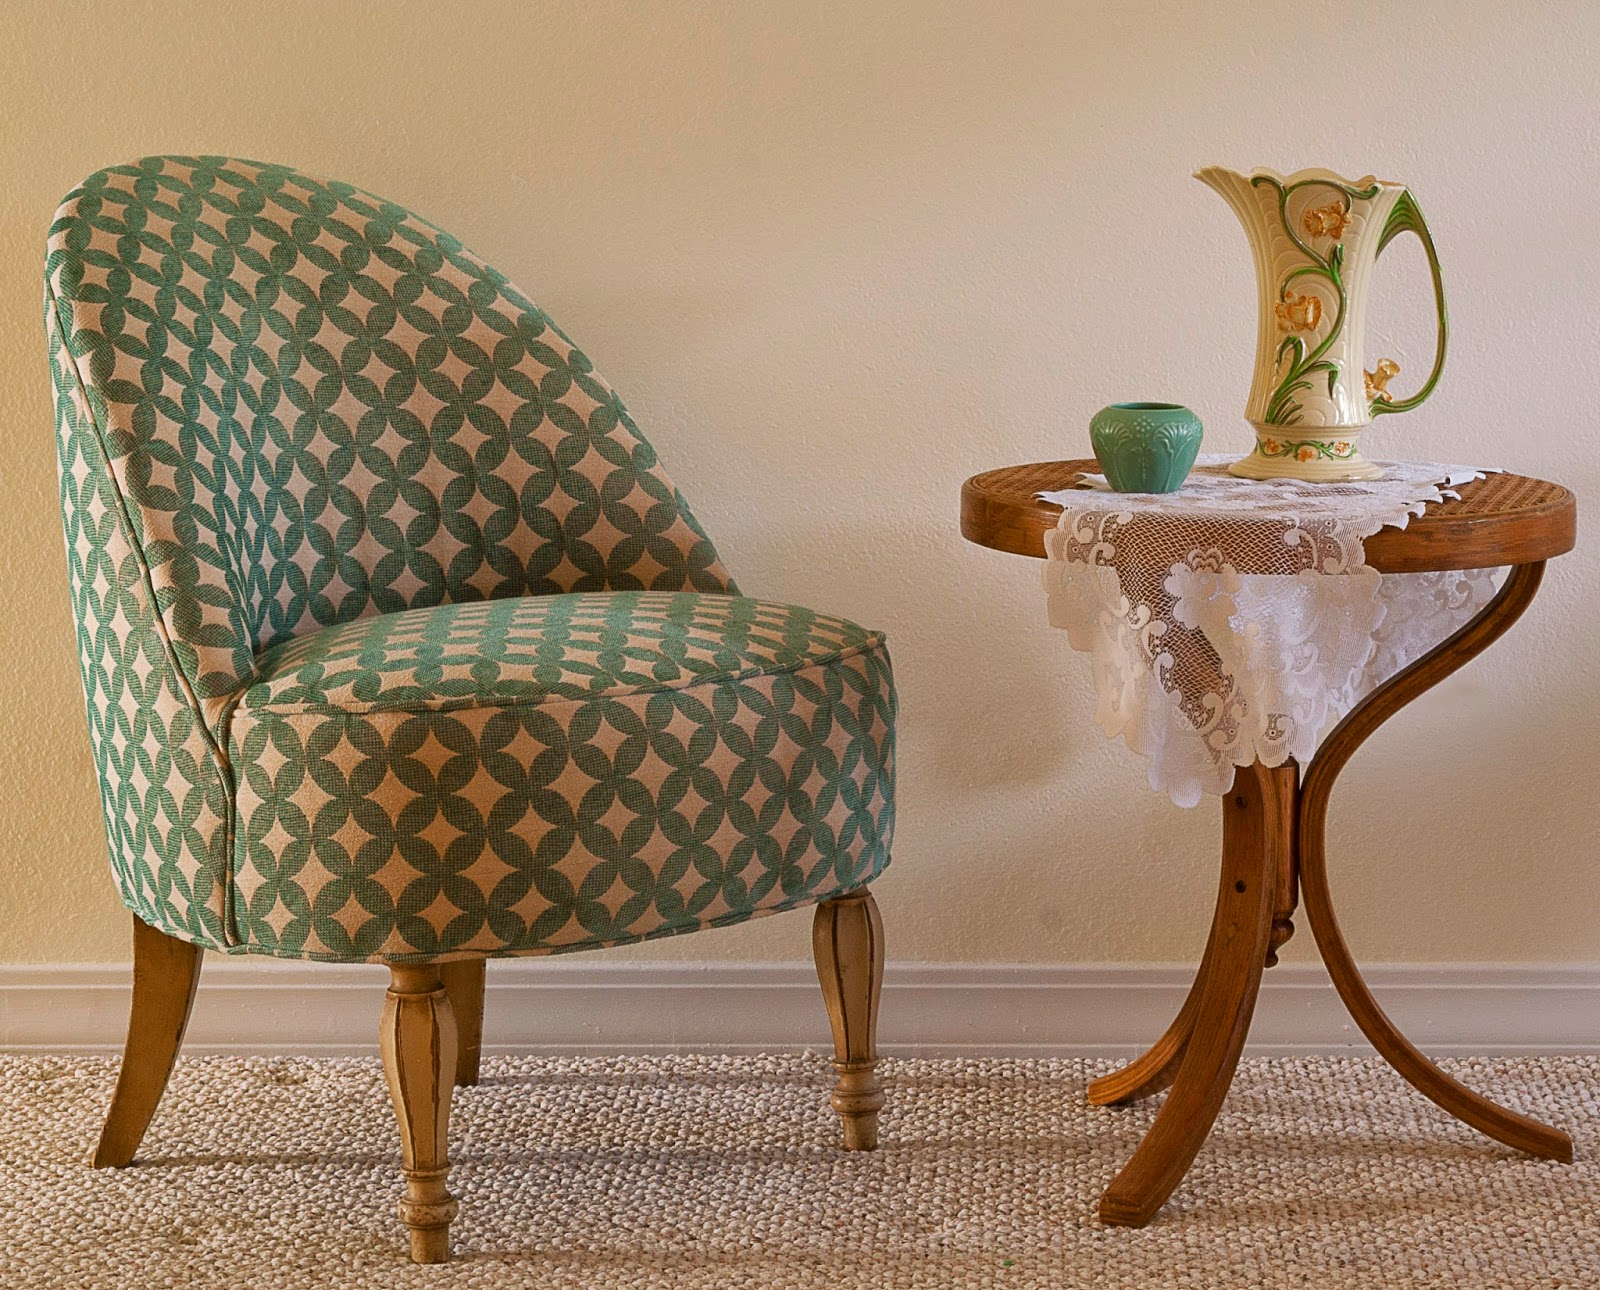 Upholstery makeover of a Goodwill chair, 8 tips for thrift shopping